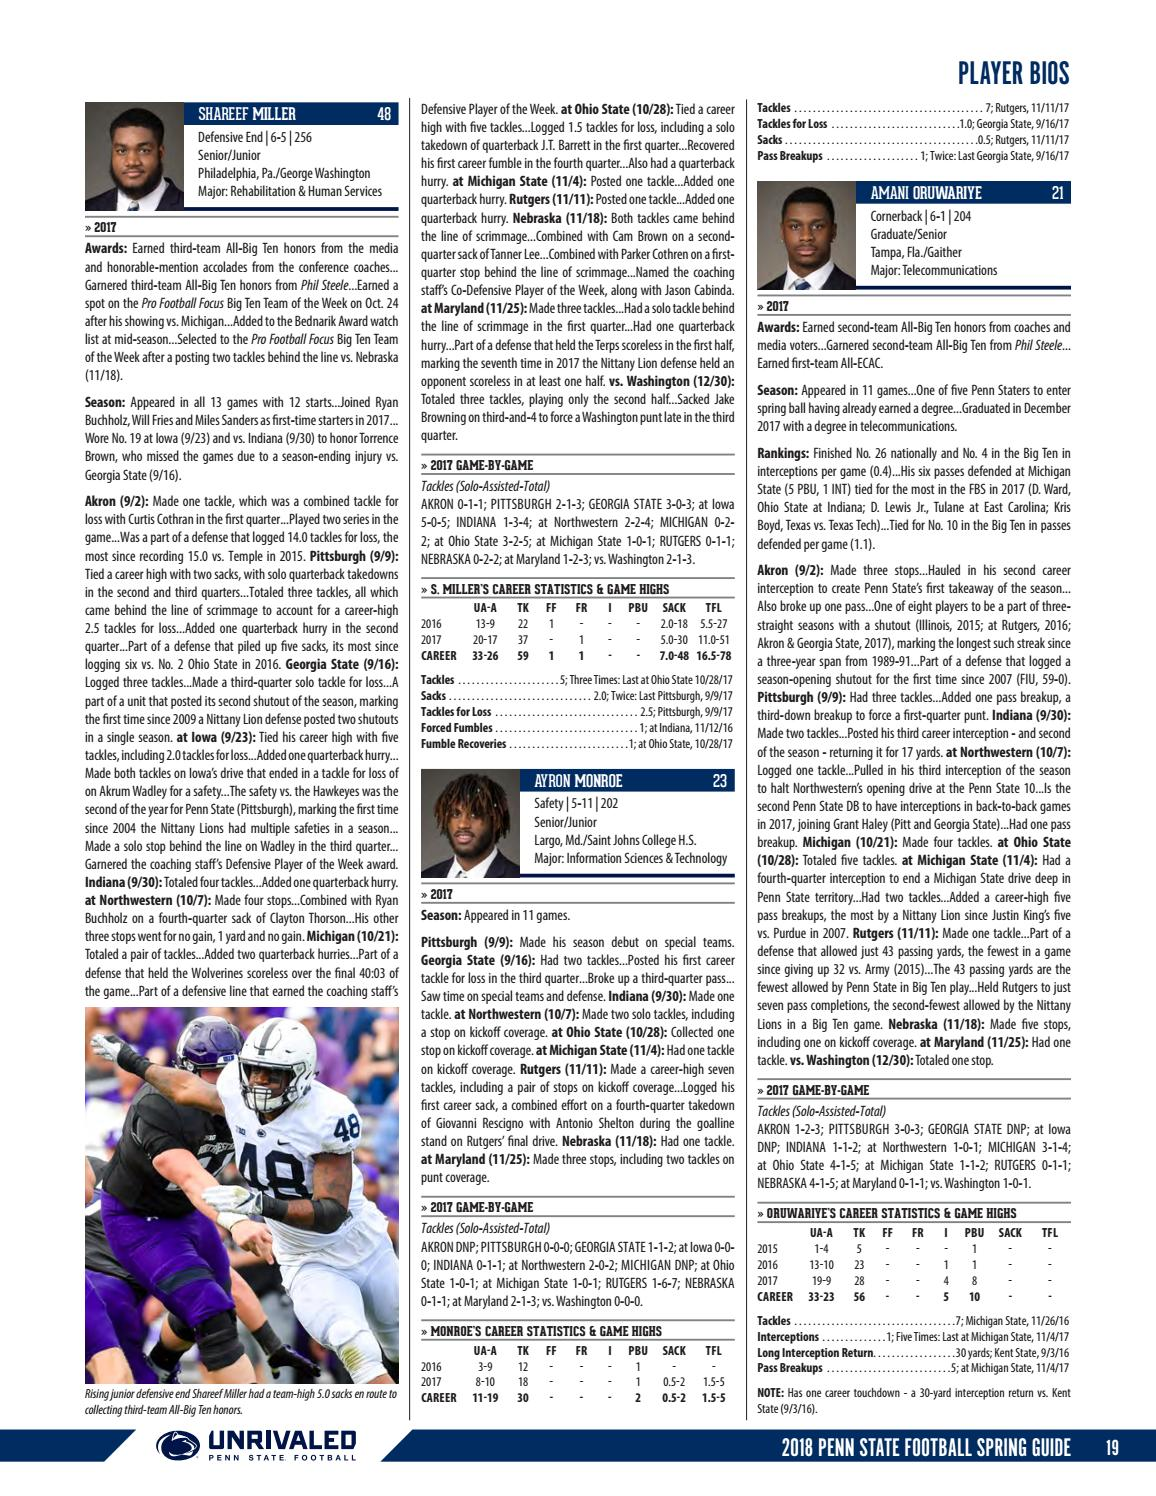 2018 Penn State Football Spring Guide by Penn State